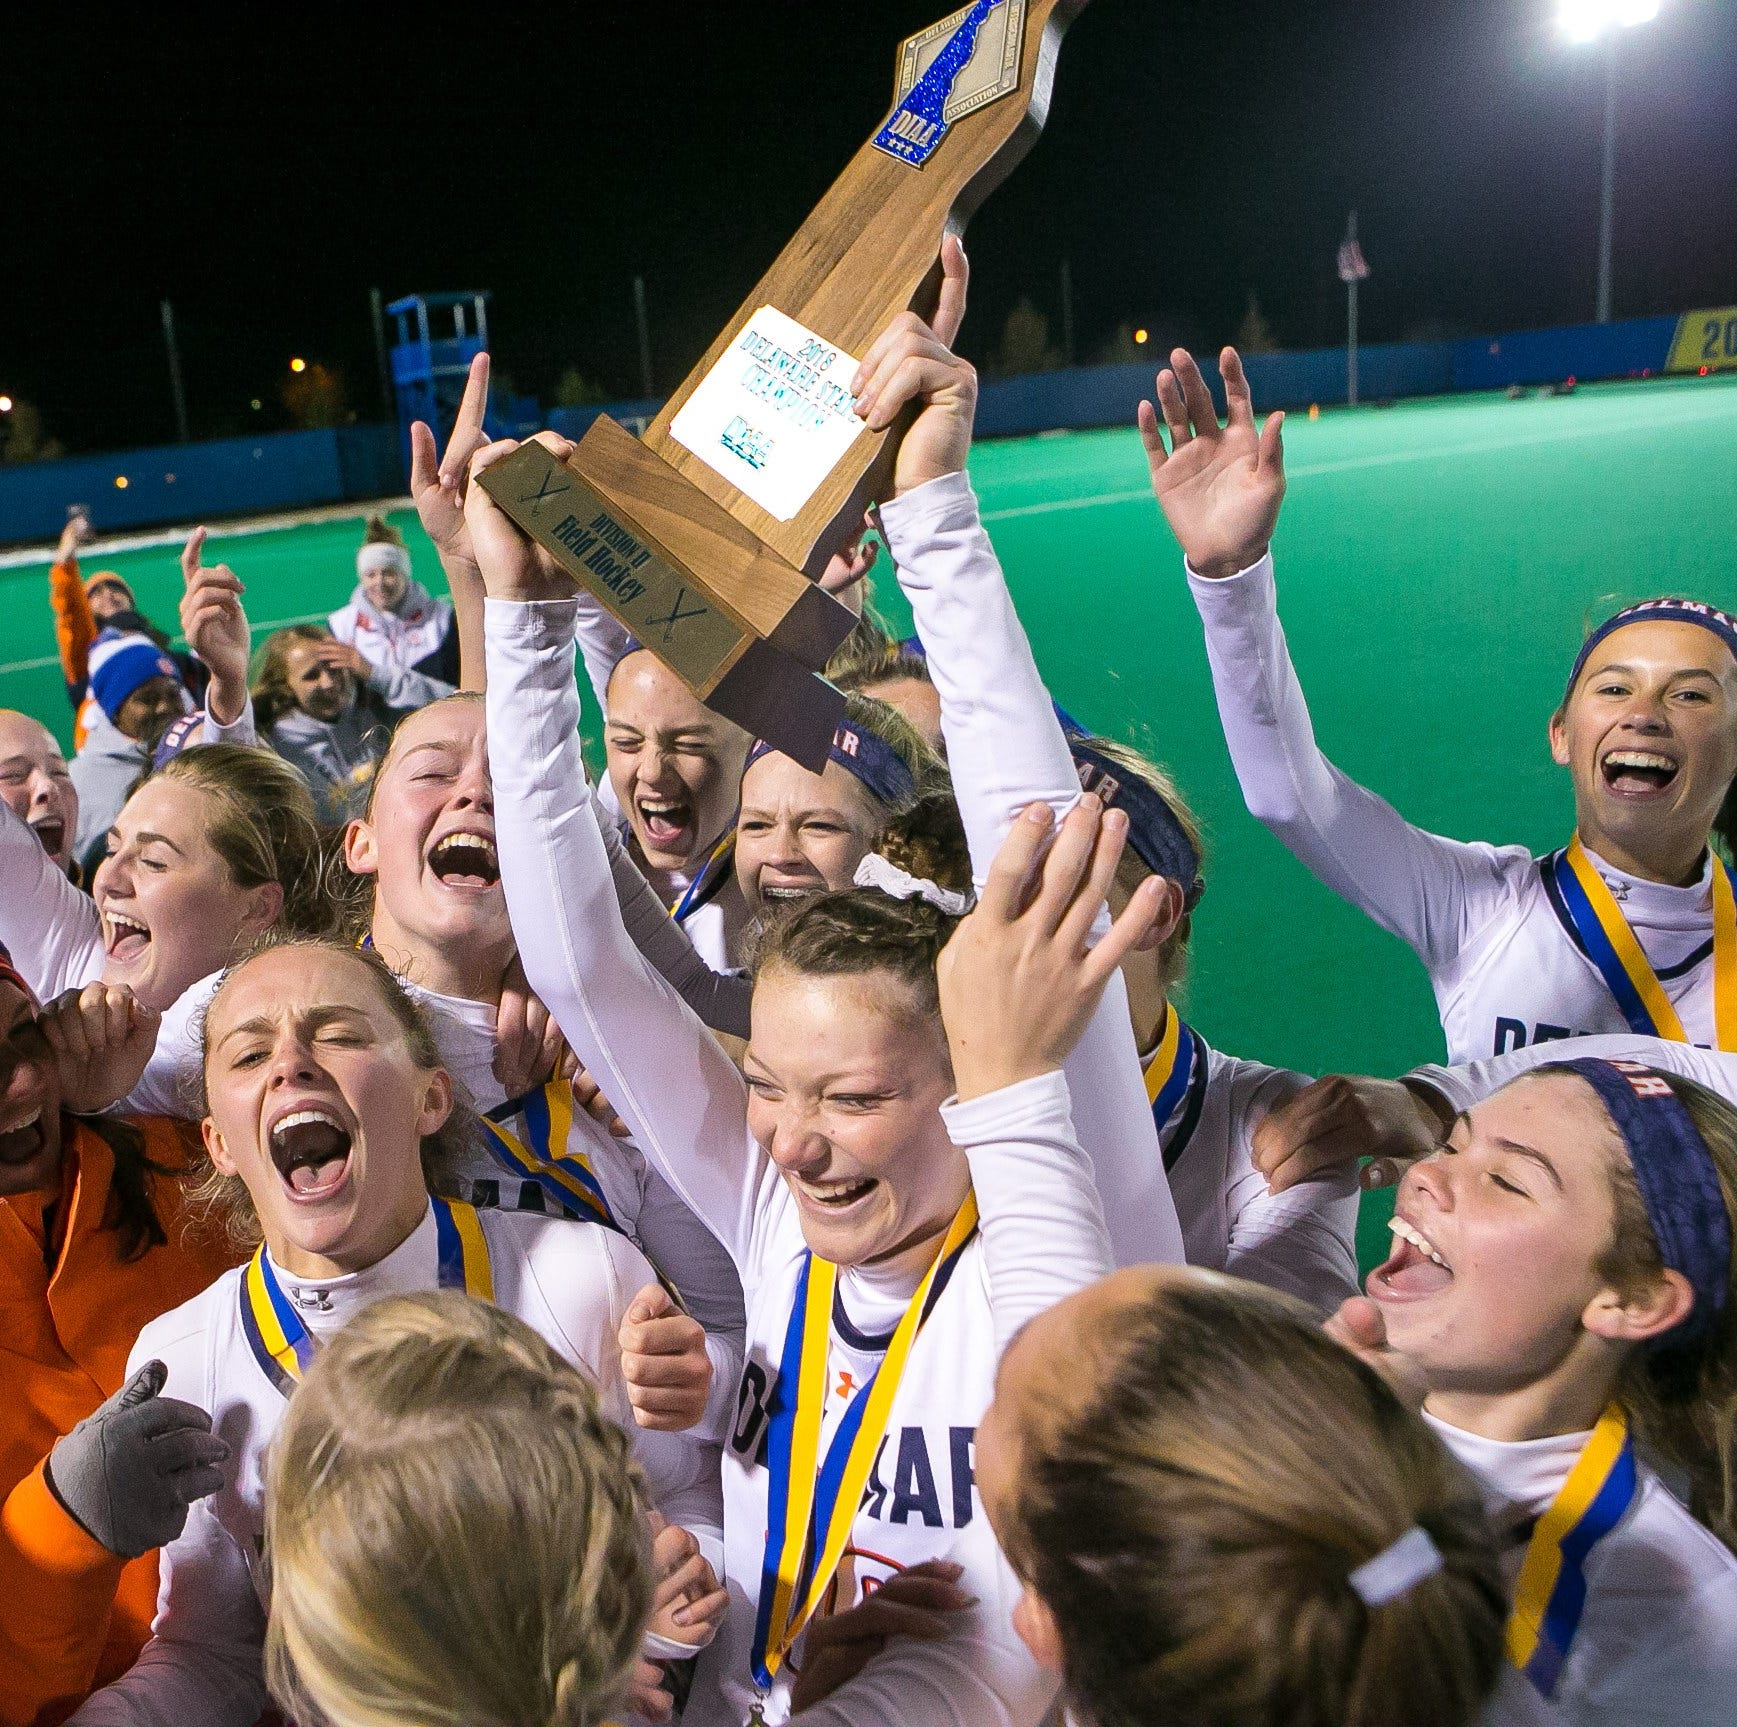 Delmar defeats Caravel to claim its third straight field hockey state title